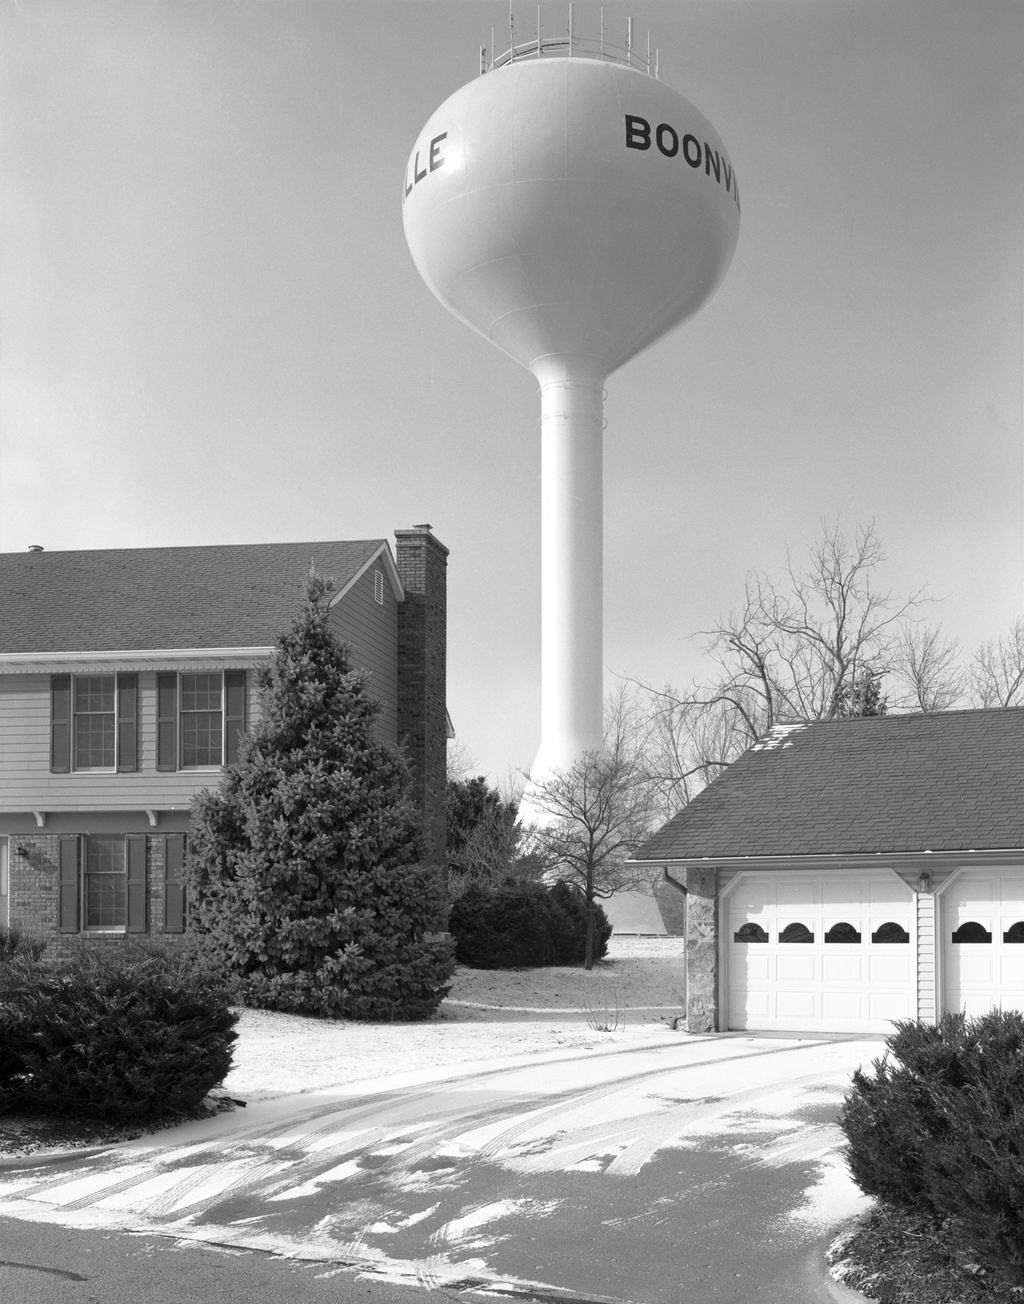 Water Tower, Boonville, MO. 2008. © Timothy Briner